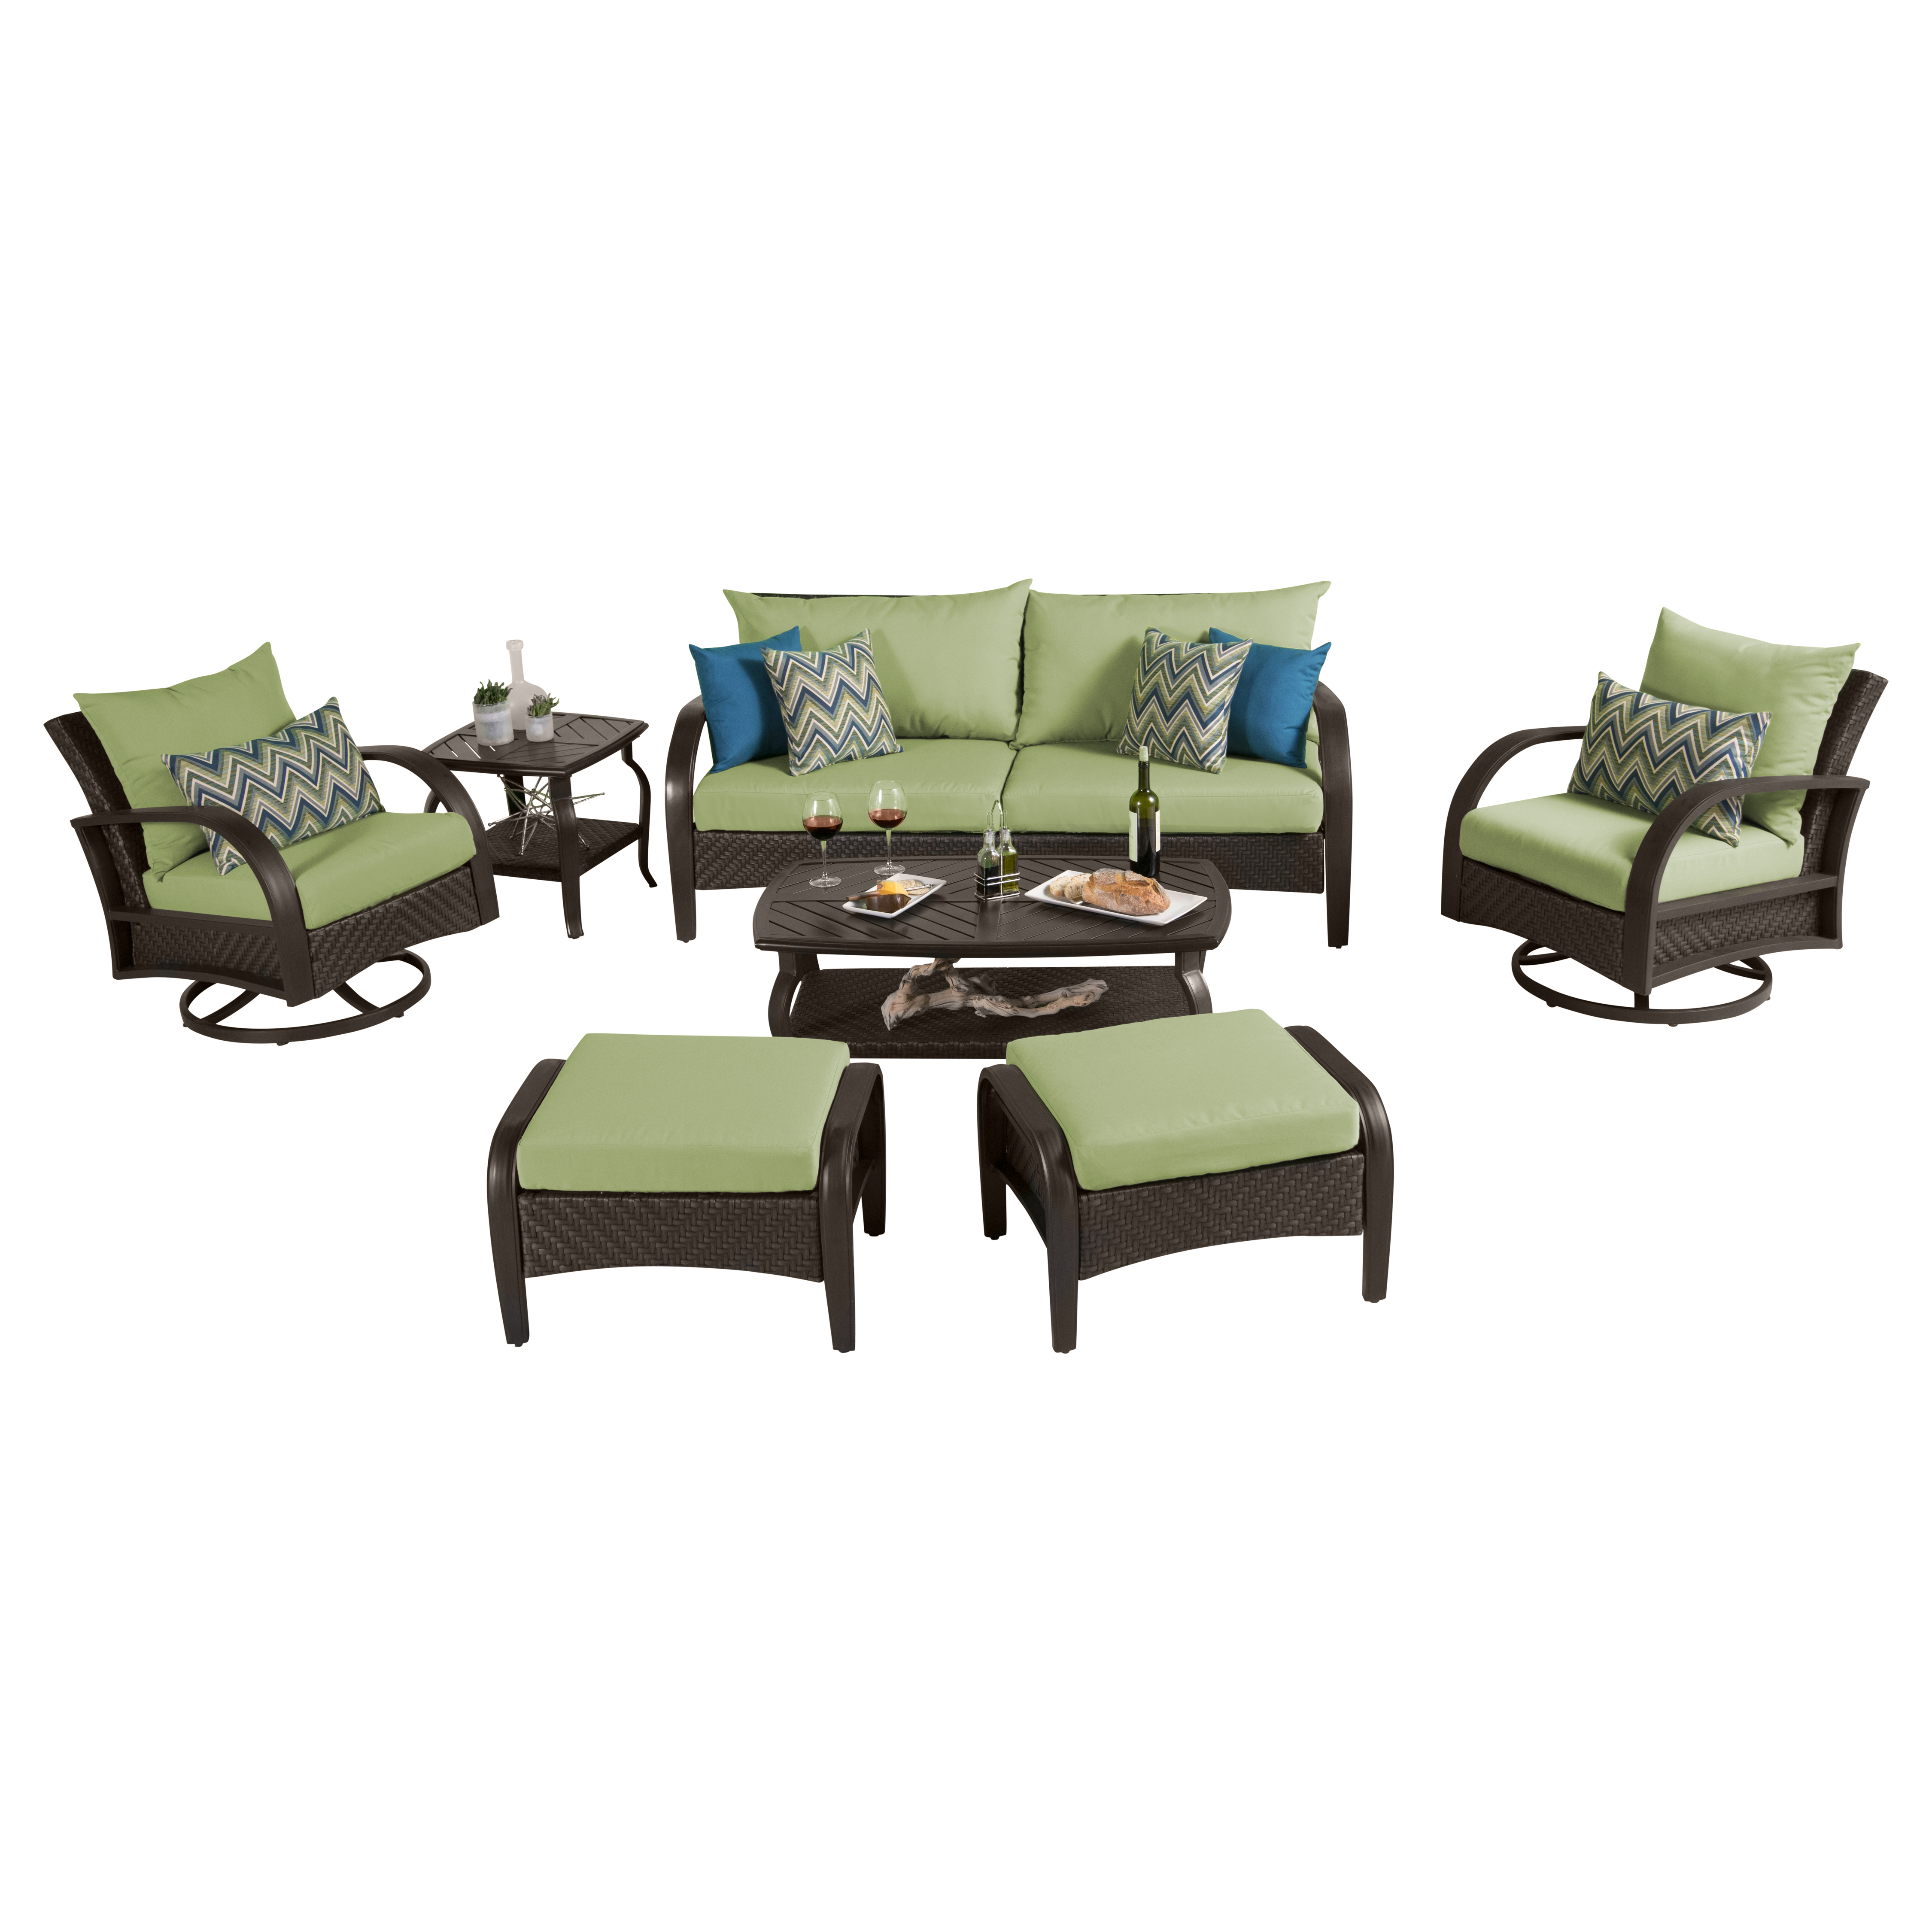 How to preserve outdoor furniture rst brands for Outdoor furniture brands